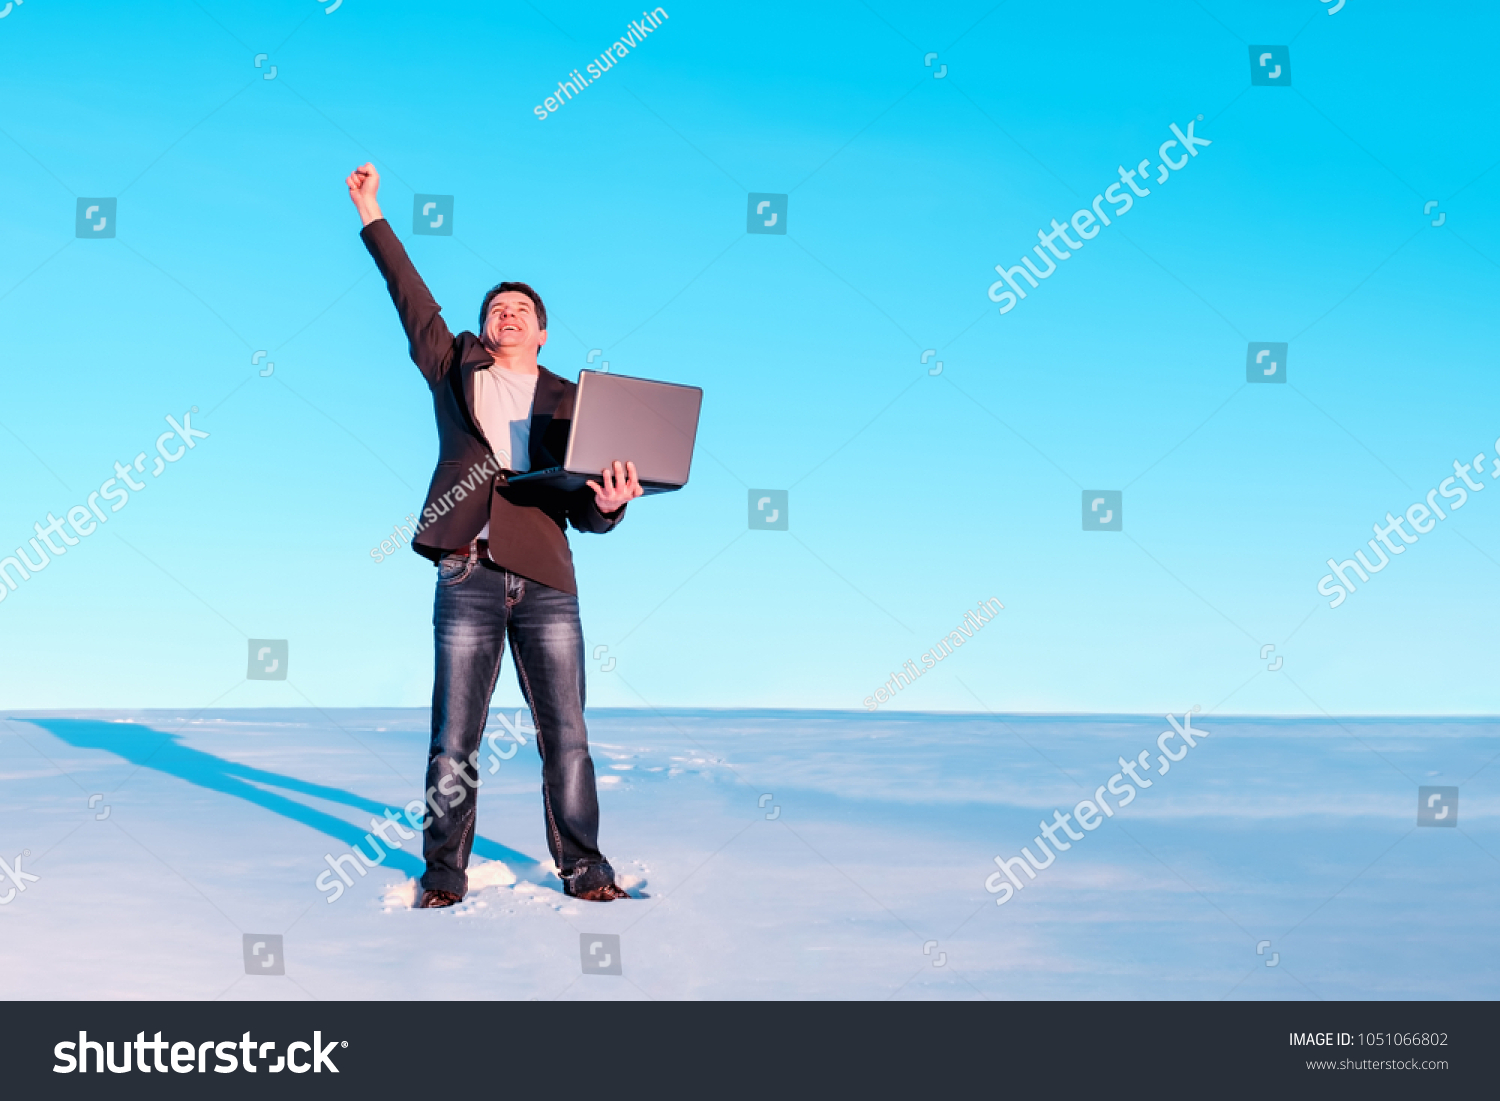 Freelancer with a laptop joyfully raised his hand. The concept of success and work in any setting. #1051066802